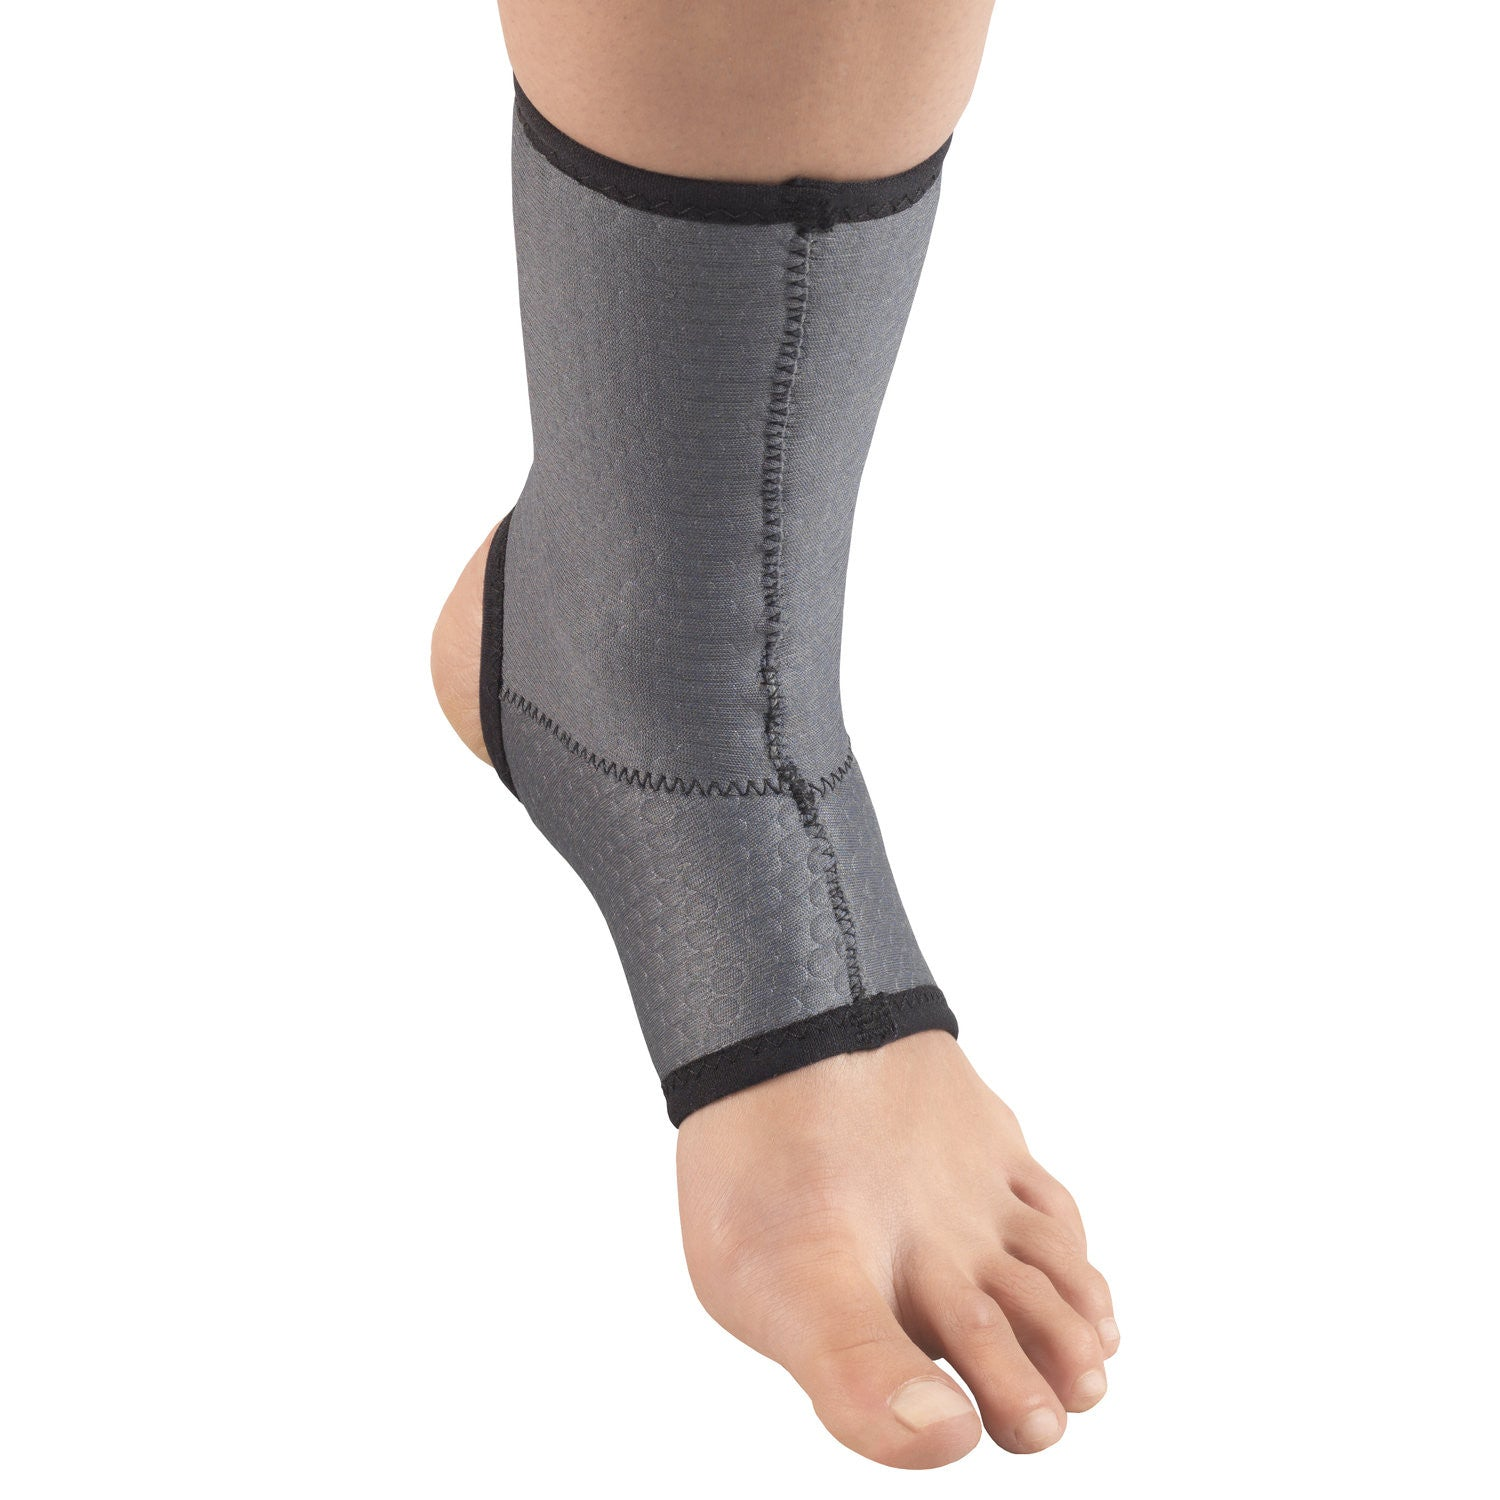 AIRMESH ANKLE SUPPORT